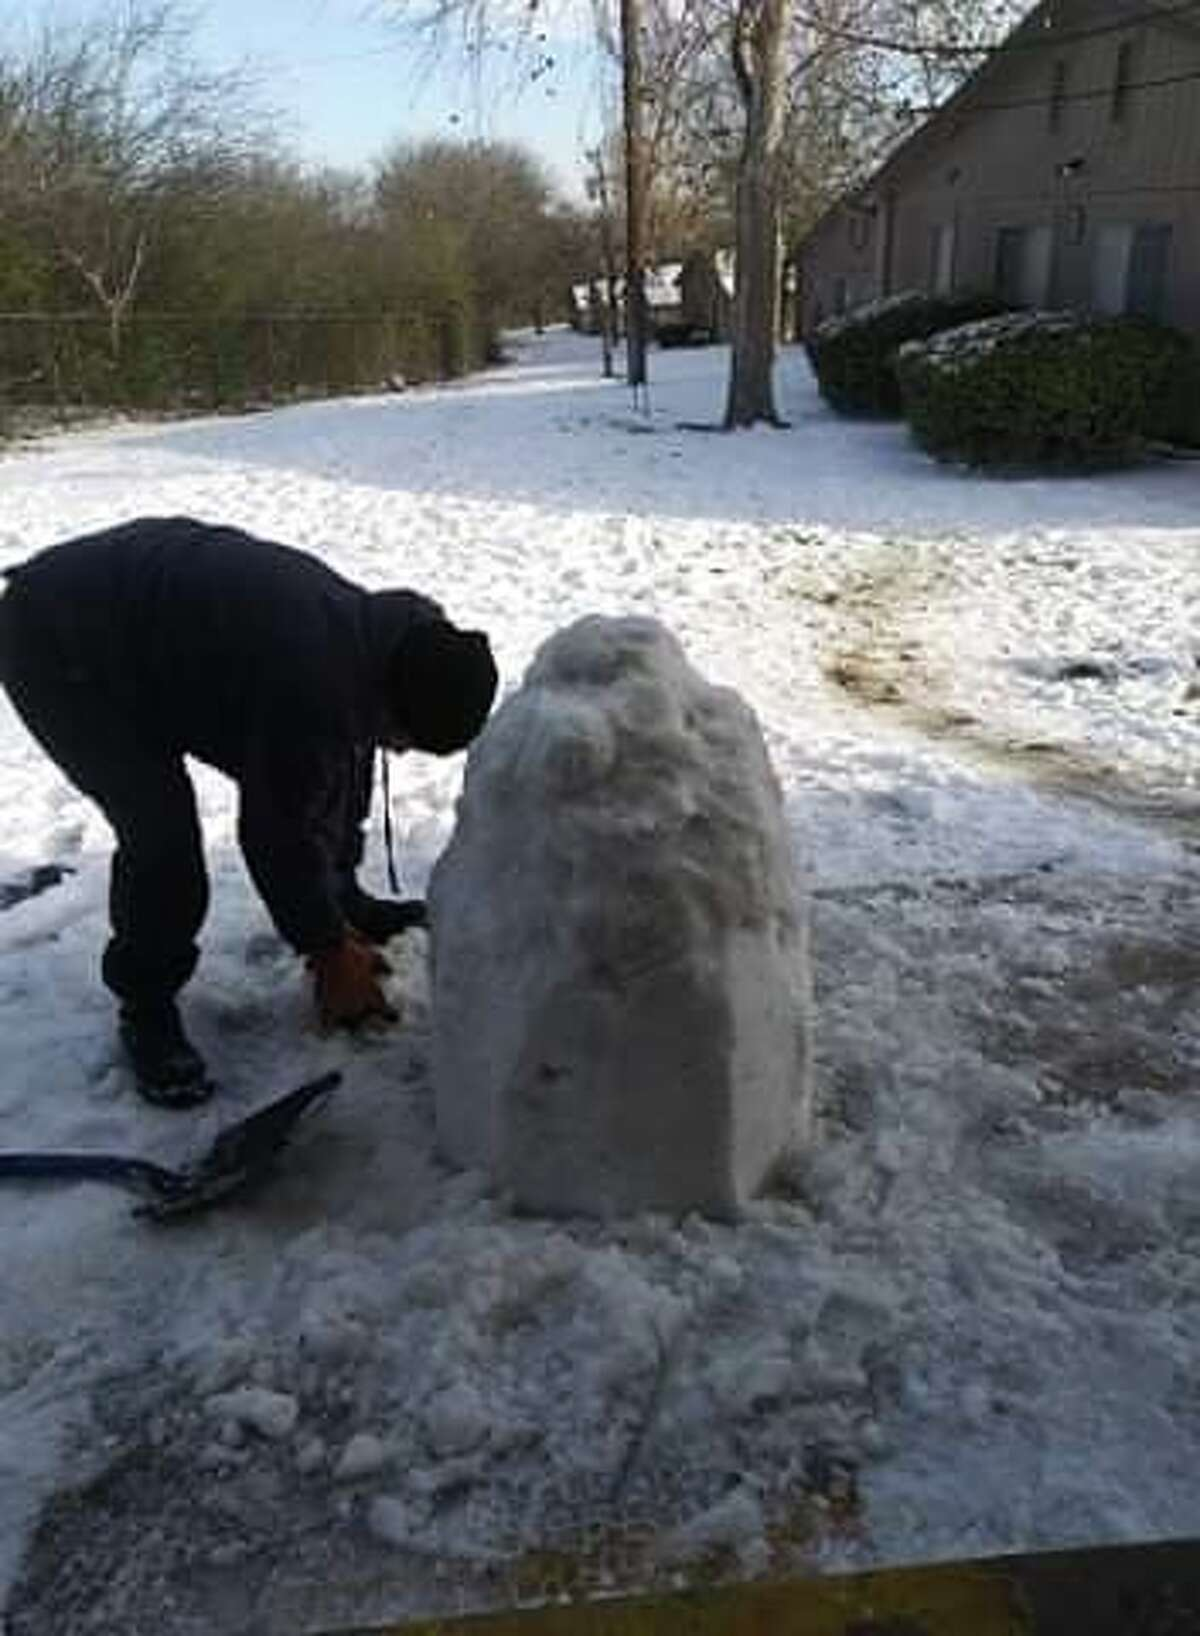 While other snow-struck San Antonians searched for snowman accessories, Perez worked her arts and crafts expertise.